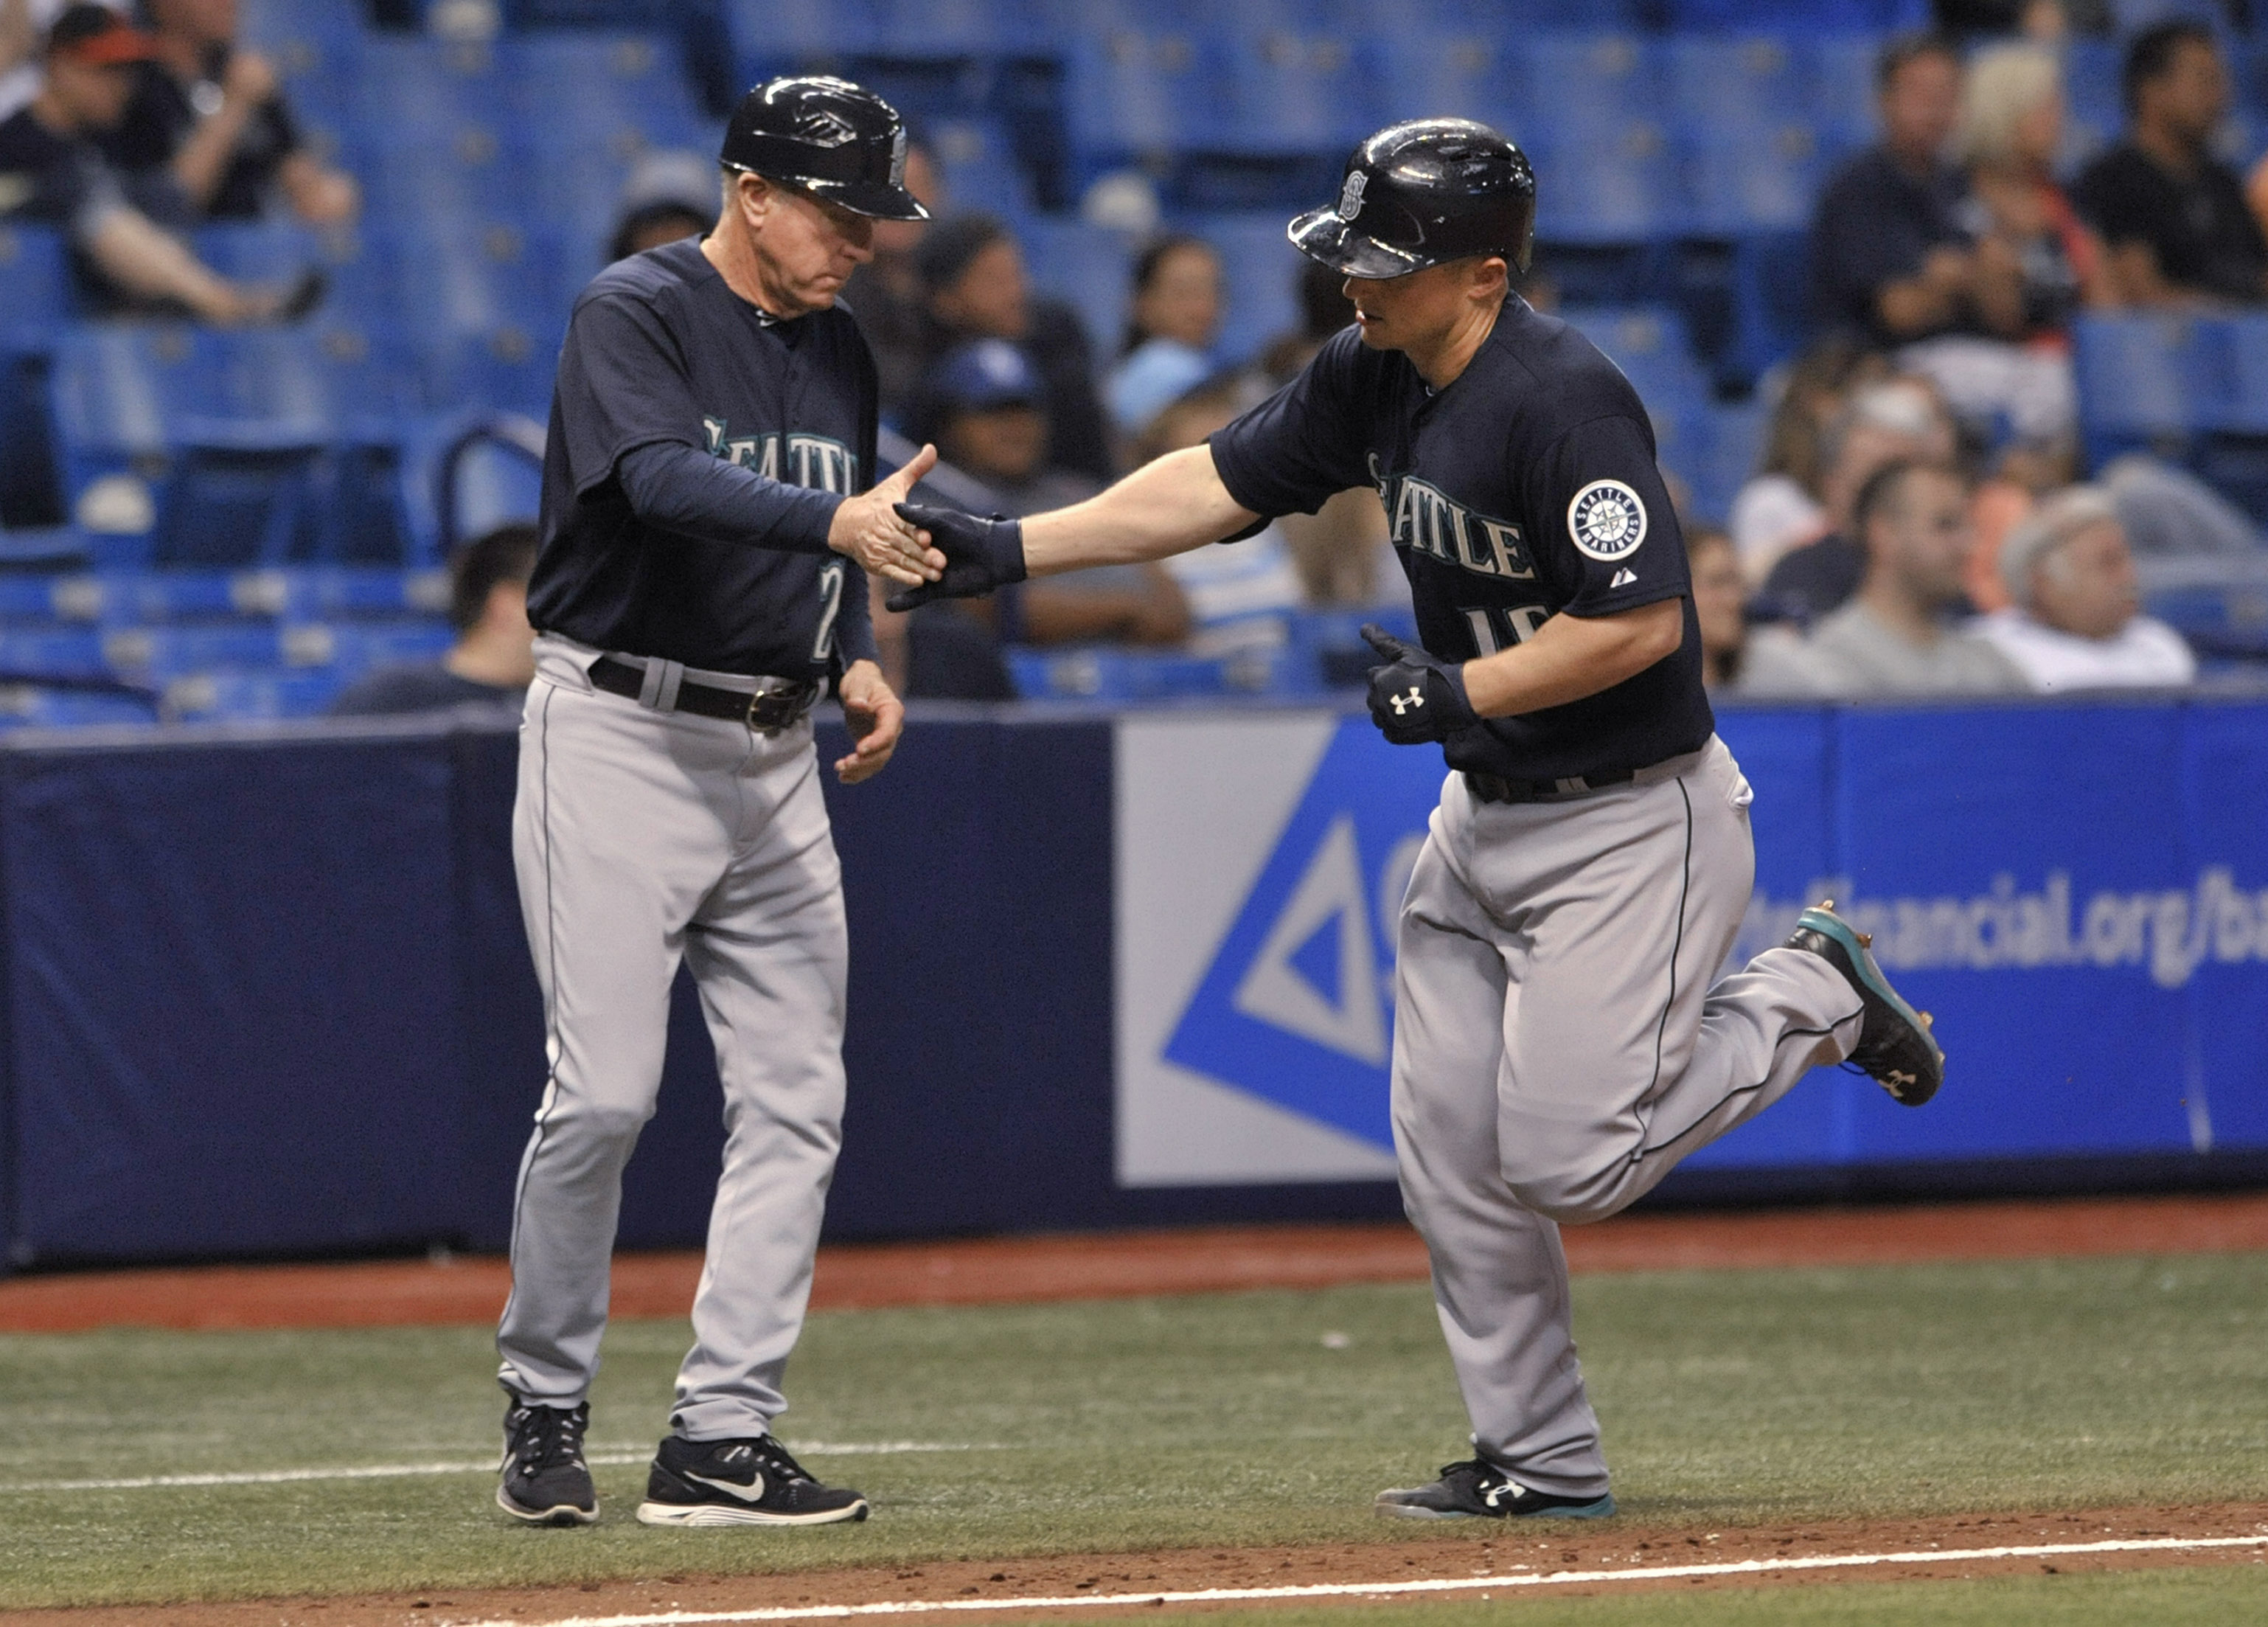 Seattle Mariners third base coach Rich Donnelly, left, congratulates Kyle Seager as he circles the bases after hitting a solo home run off Tampa Bay Rays reliever Brad Box Berger during the 10th inning of a baseball game Tuesday, May 26, 2015, in St. Pete